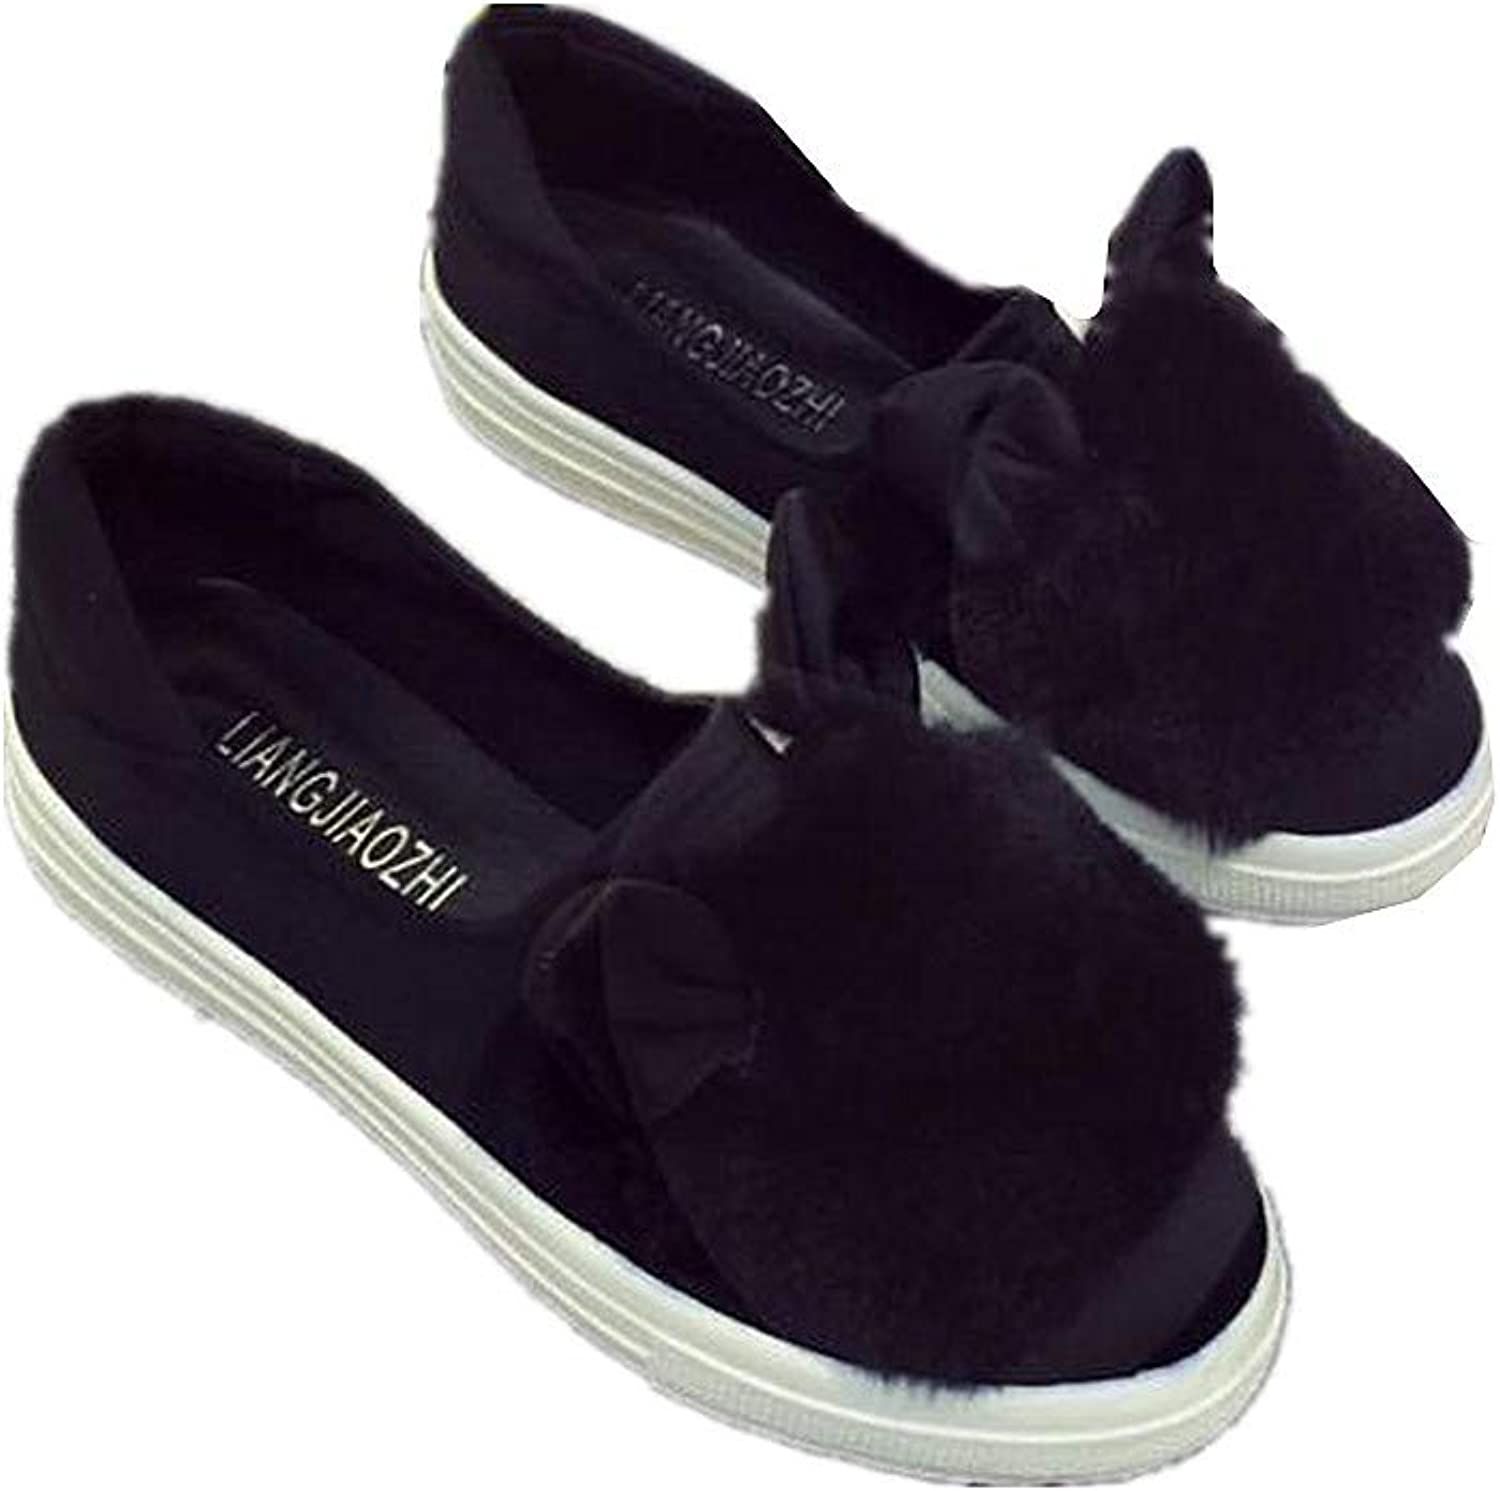 Cloudless Womens Shallow Slip On Loafer shoes Casual Walking shoes